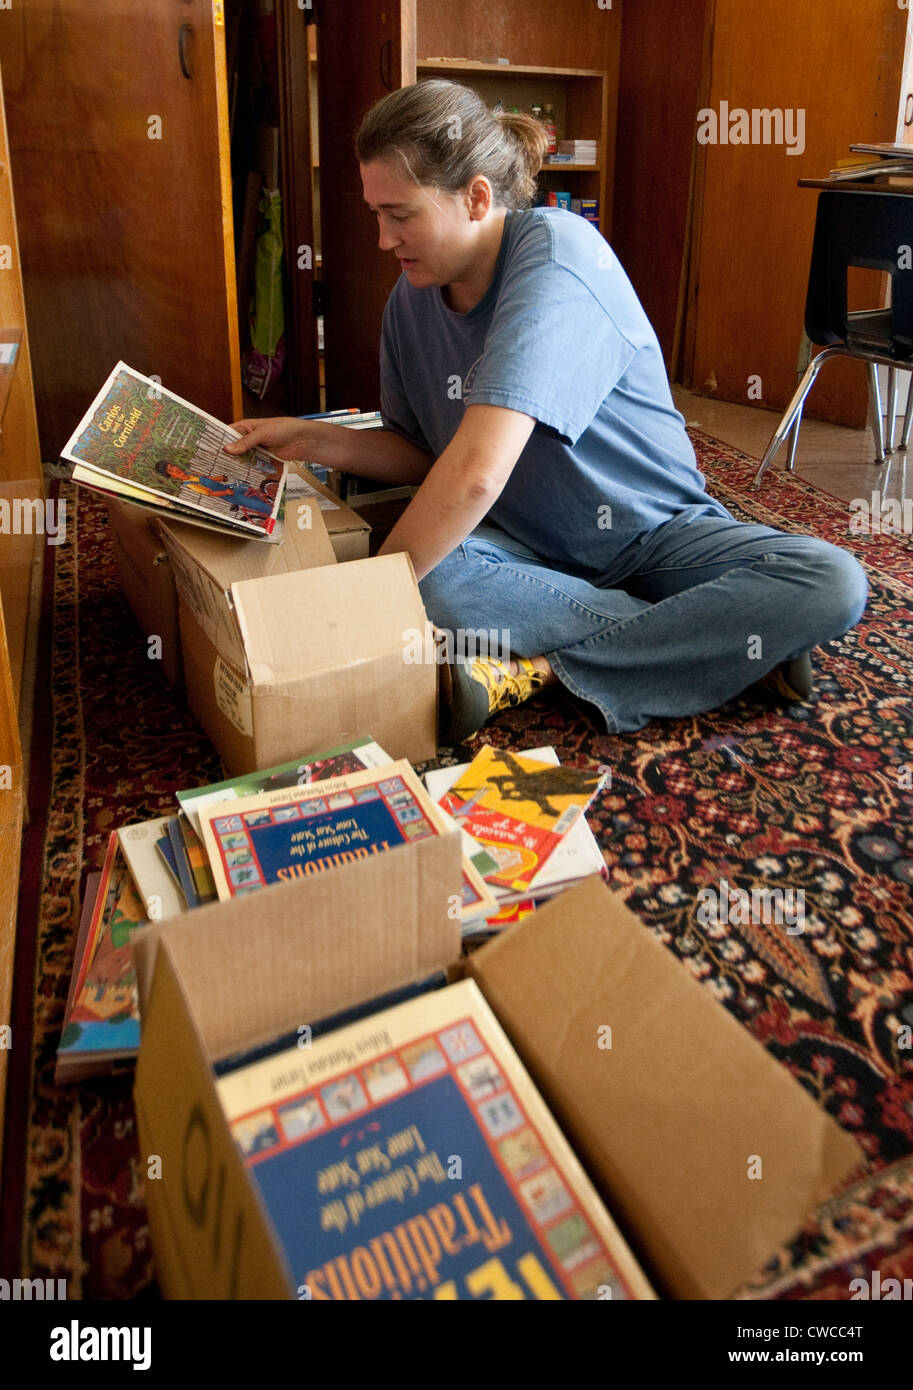 White female volunteer helps organize books to be used in classroom of elementary school in Austin, Texas - Stock Image